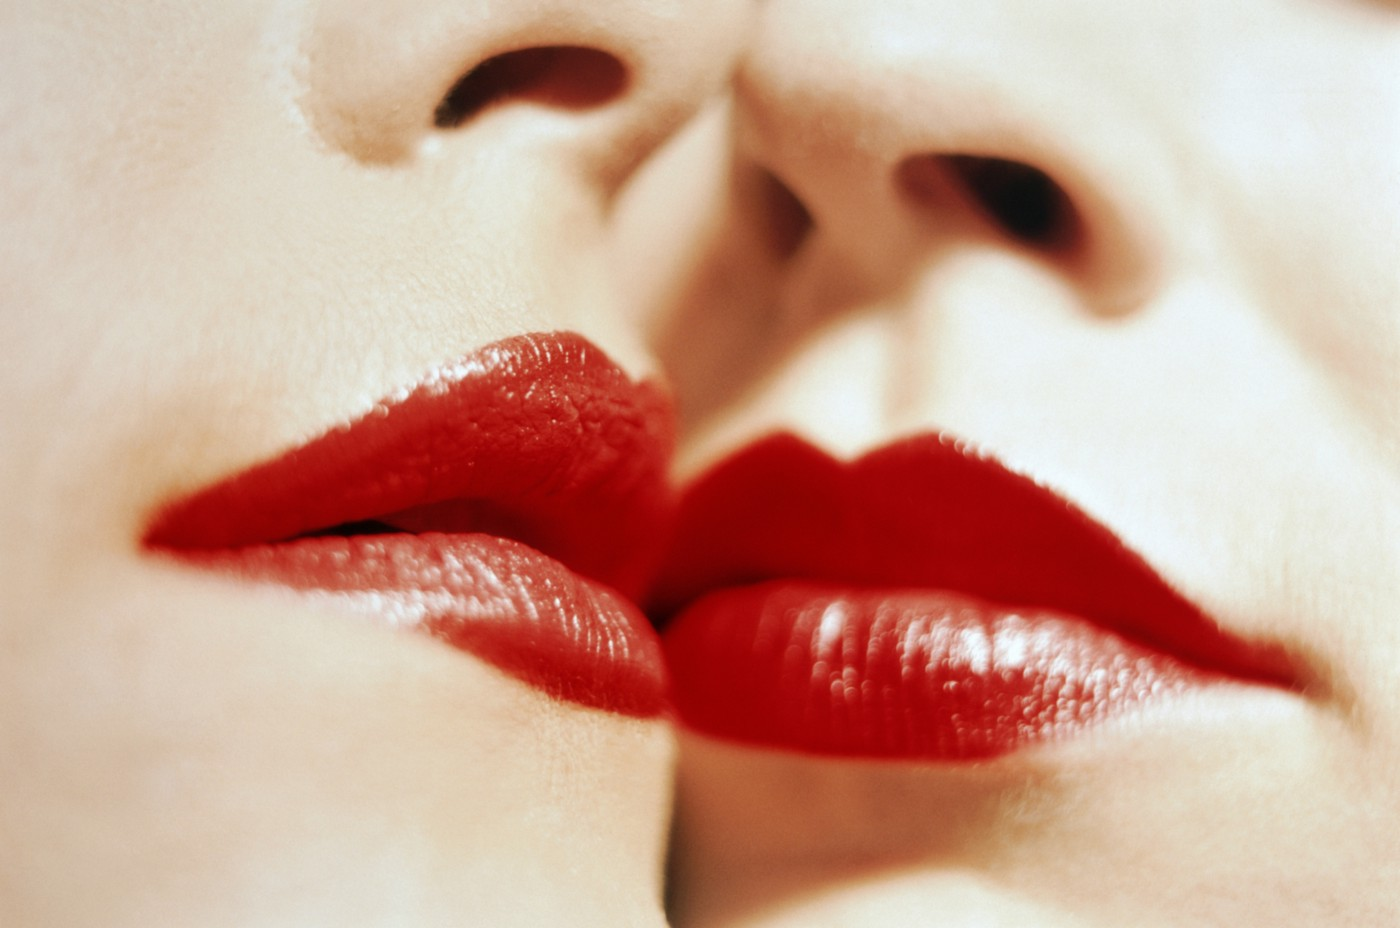 A closeup photo of two women with red lipstick with their faces touching.